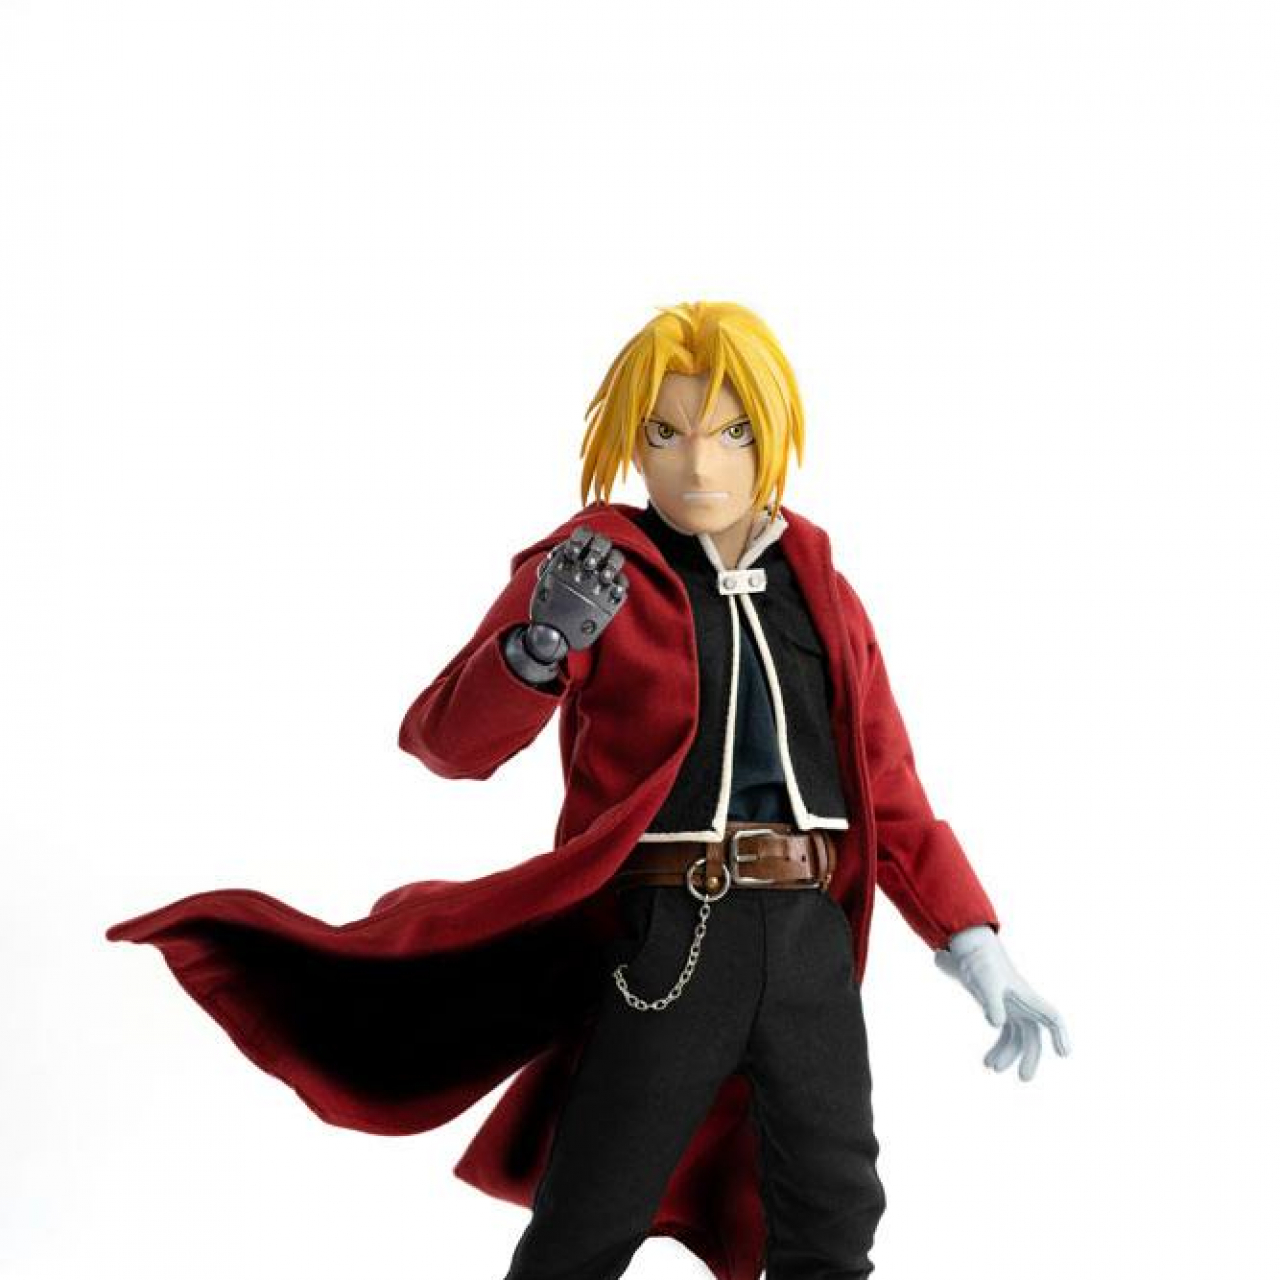 Fullmetal Alchemist: Brotherhood Action Figure 1/6 Edward Elric 25 cm